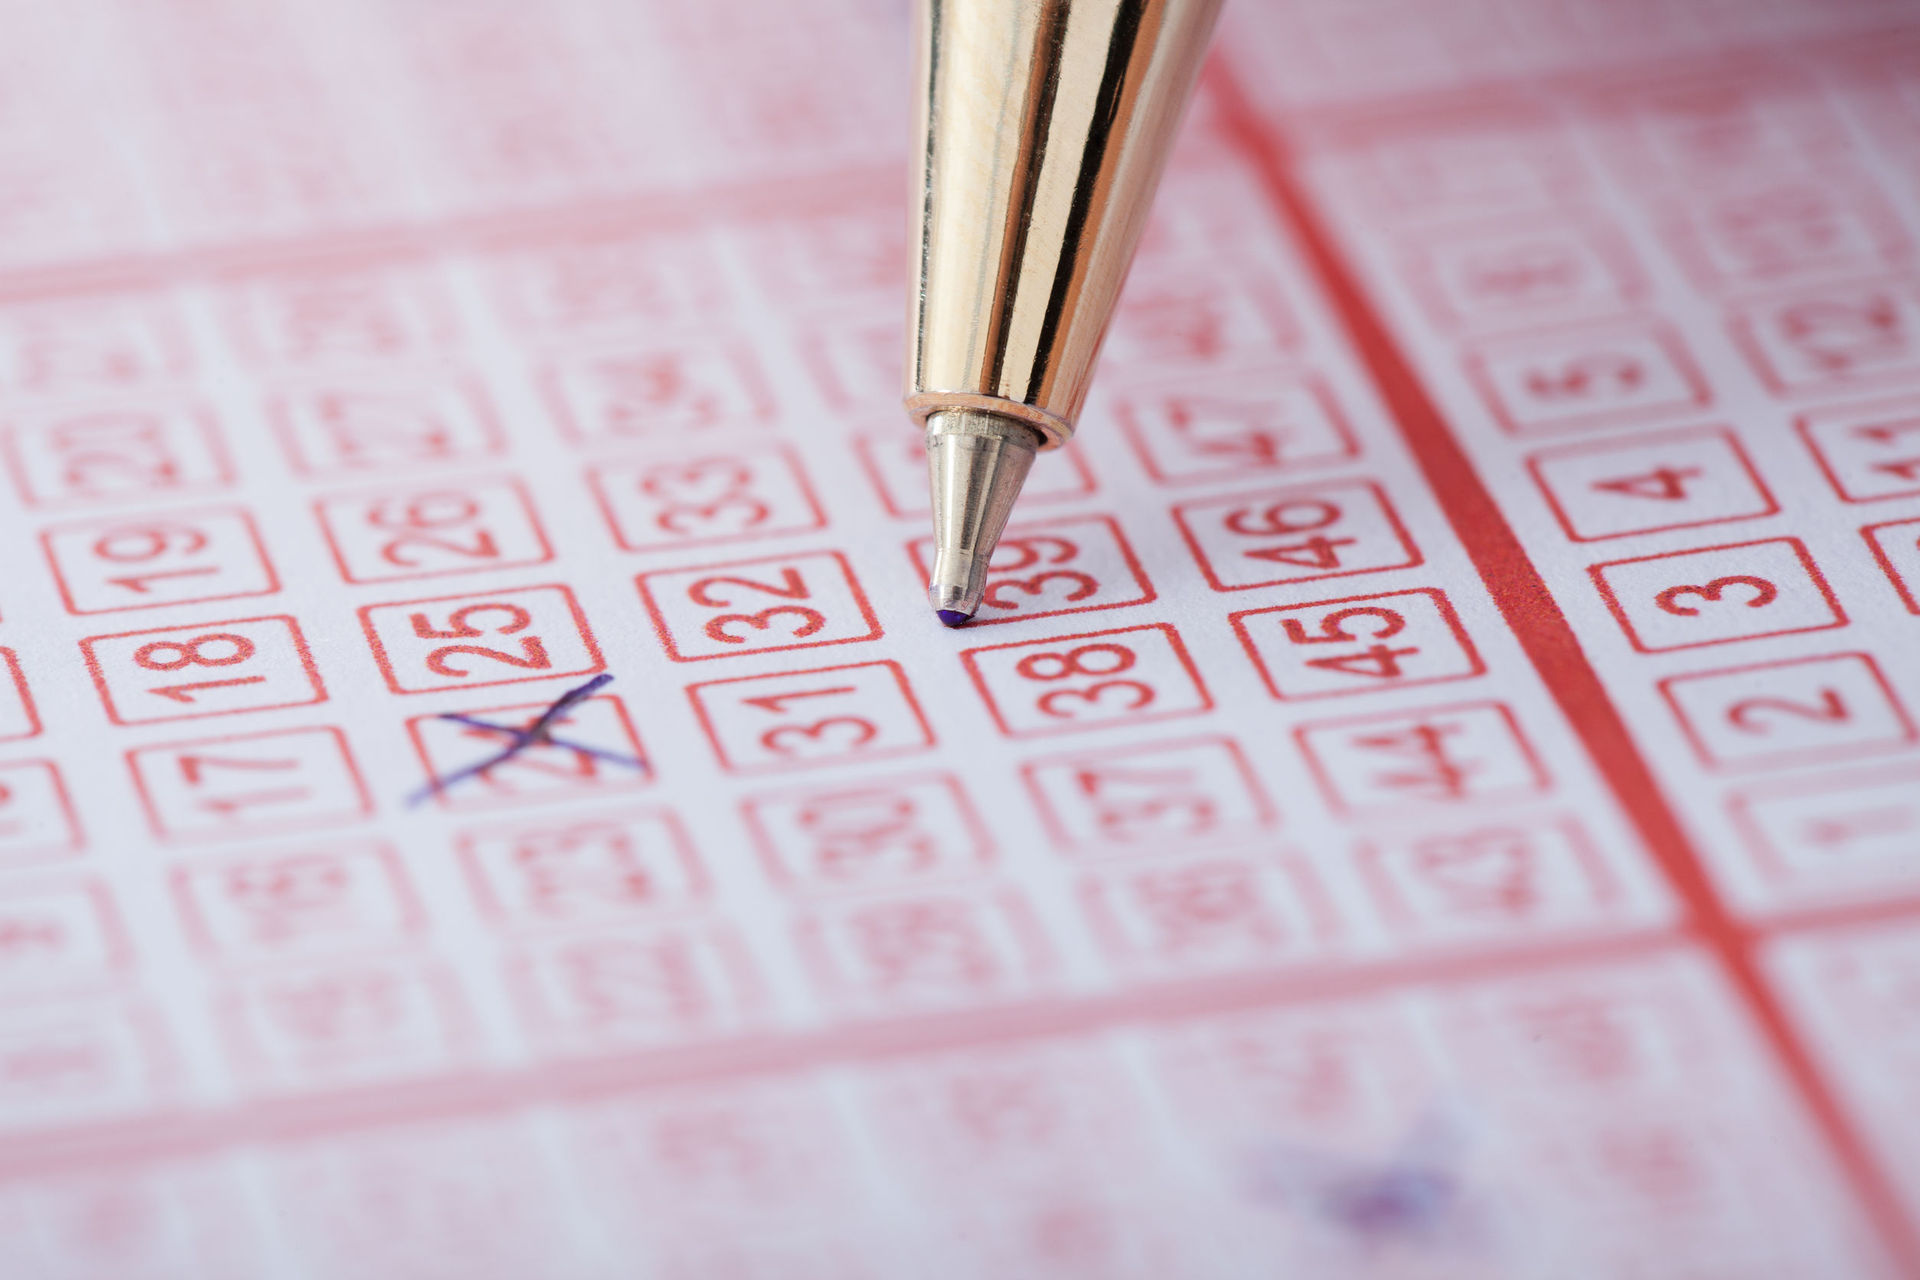 He argued his luck won the $120 million jackpot. A court ruled he had to split it with his ex